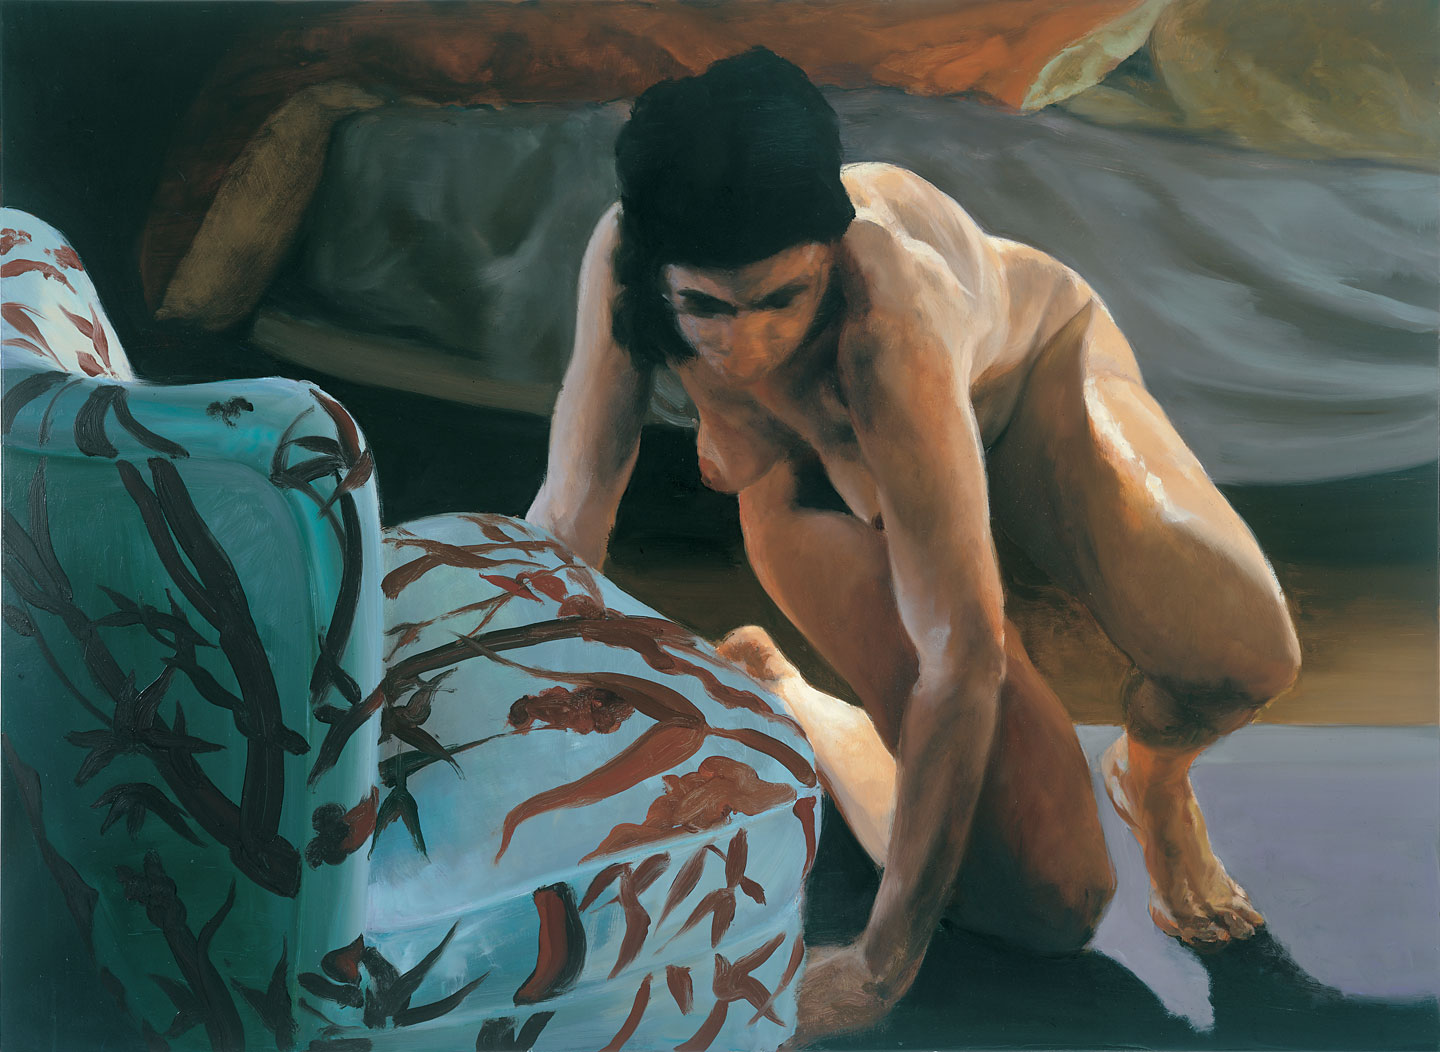 The Bed, The Chair; Hiding, 2001. Oil on linen. 38 x 52 in. (97 x 132 cm)